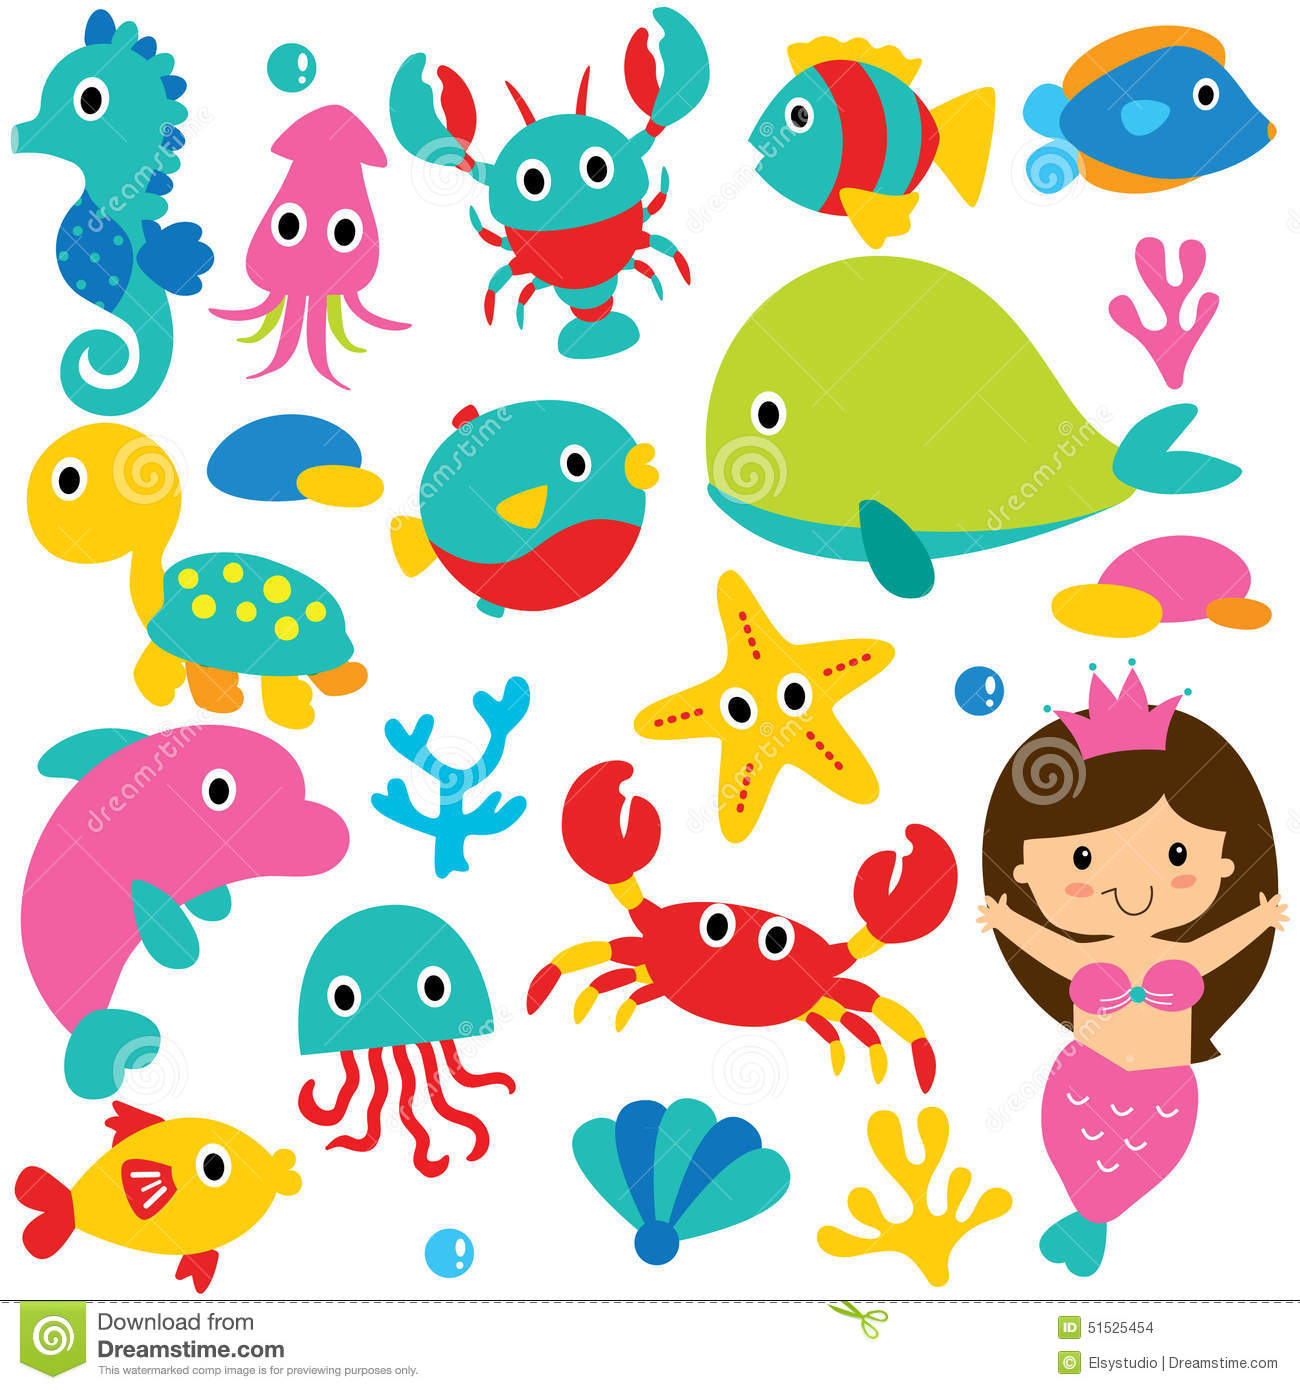 Sea creatures clipart.